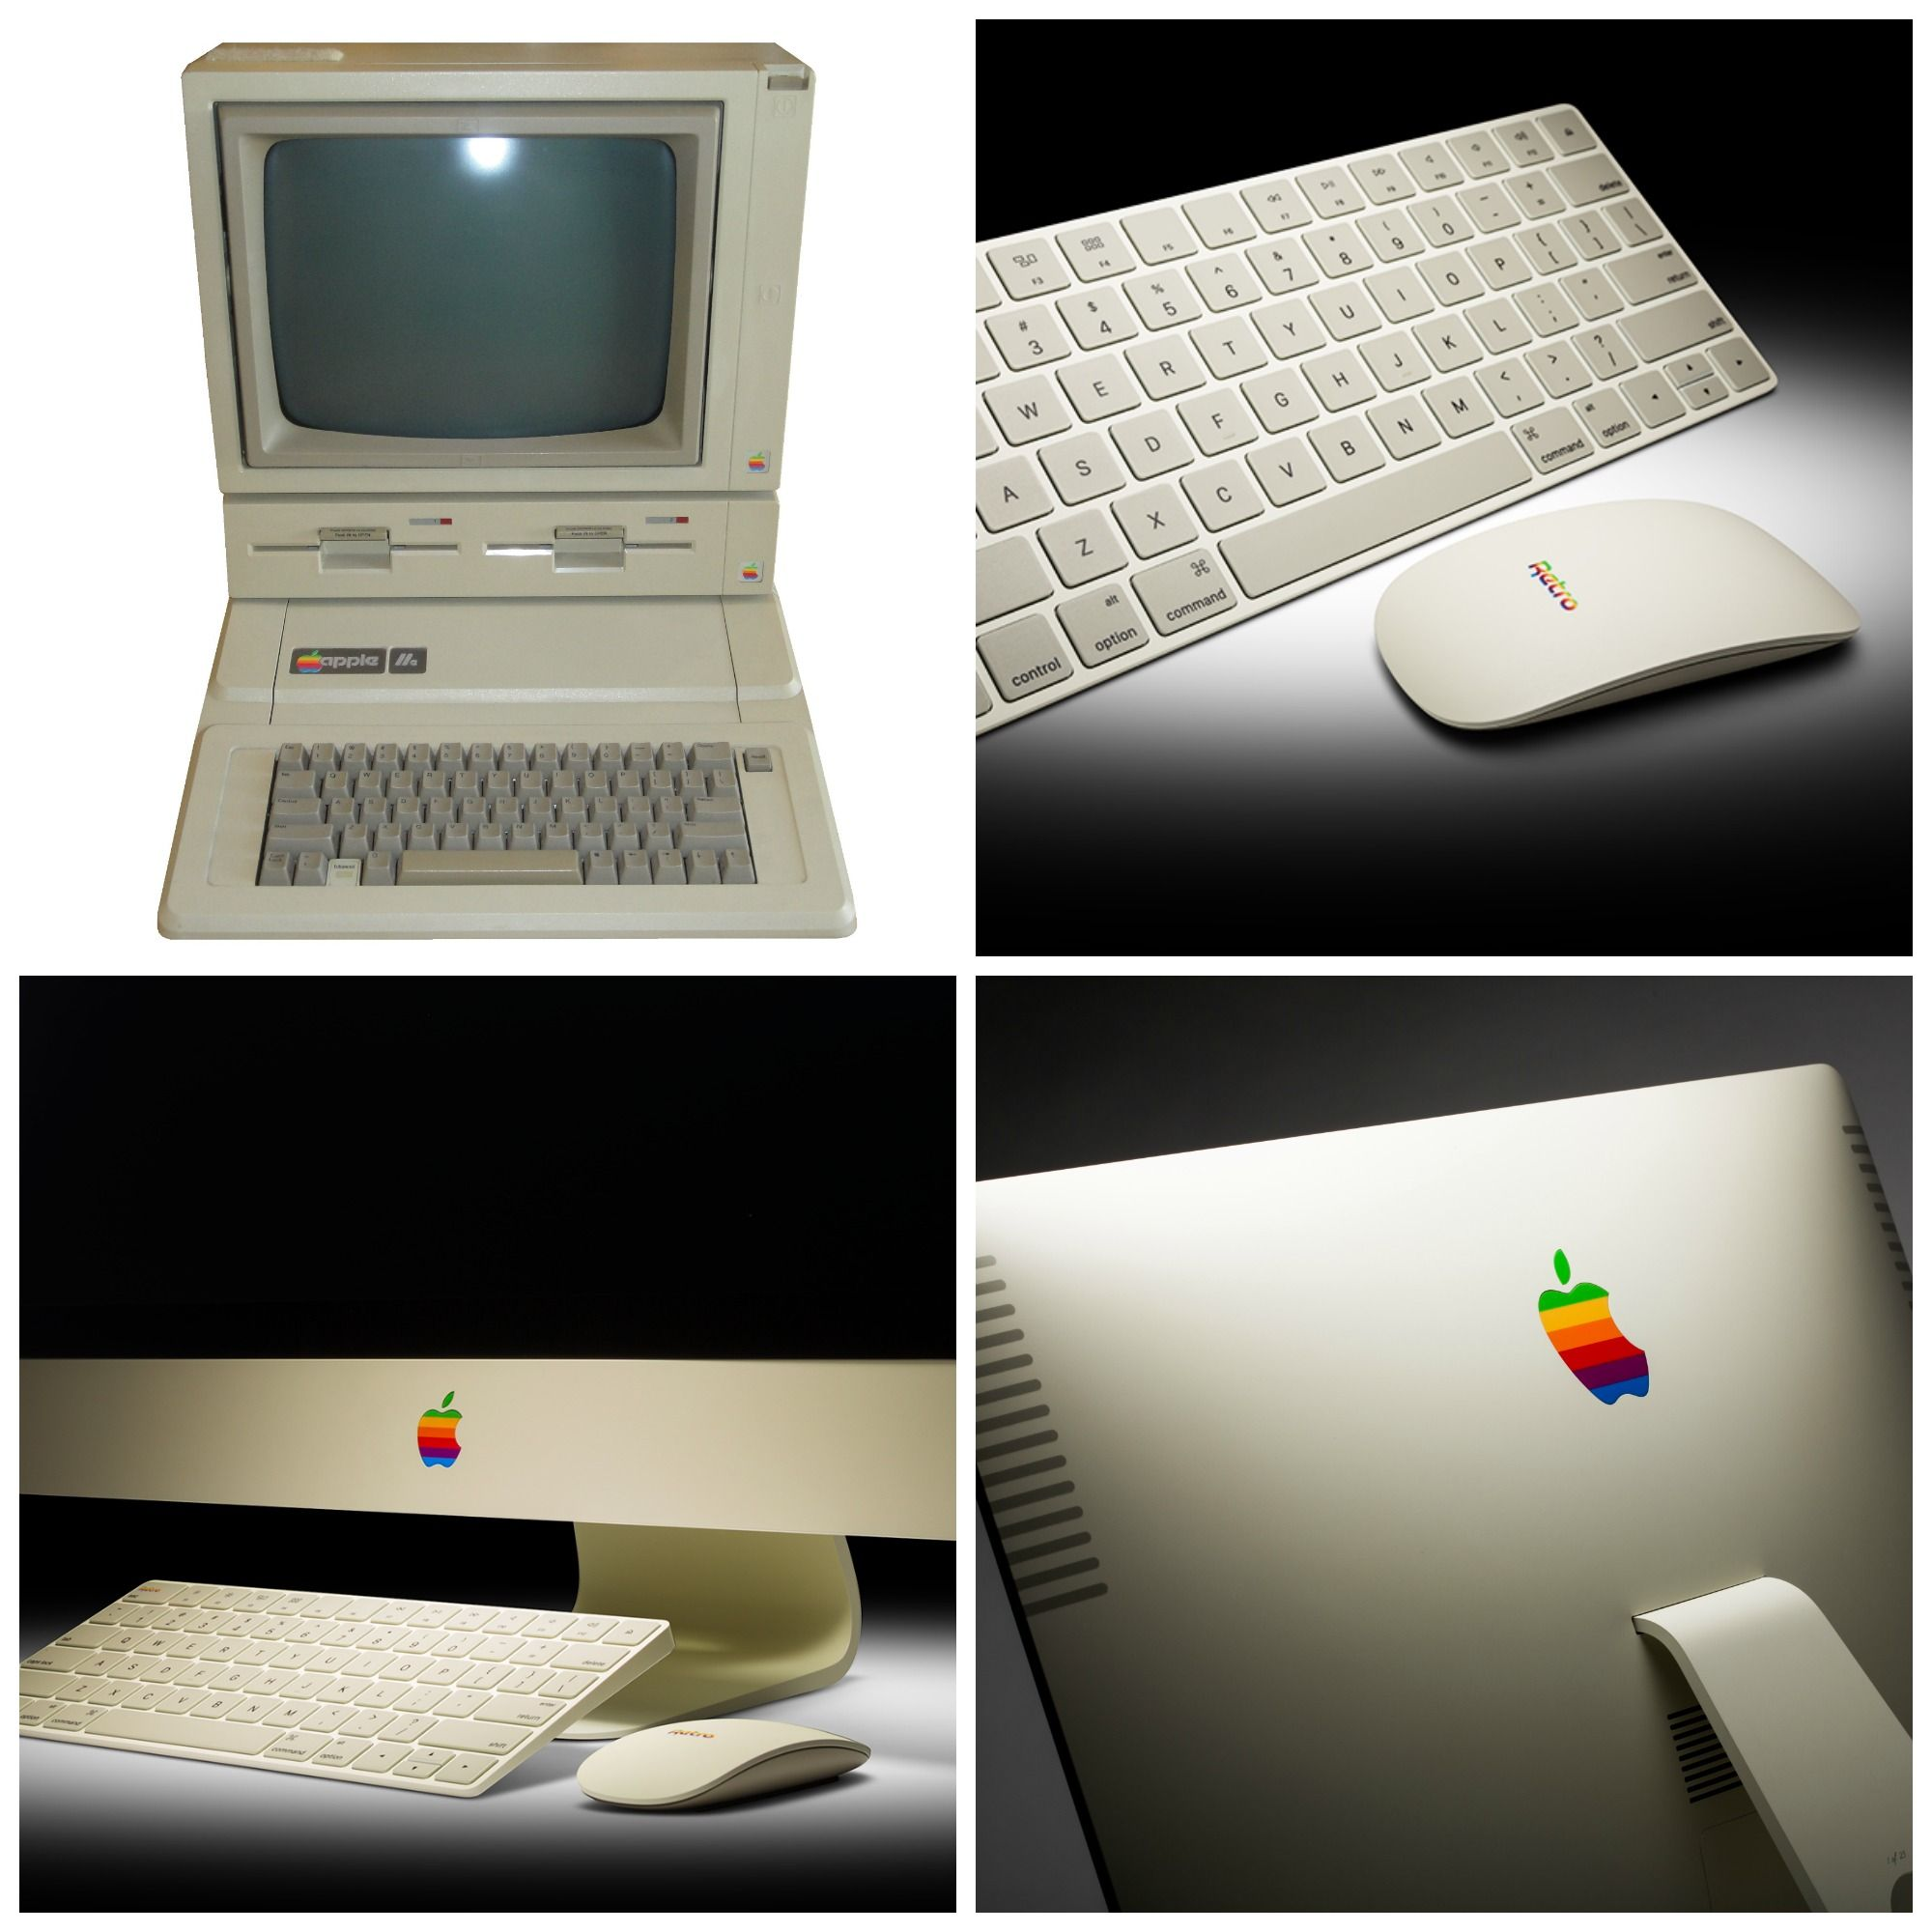 apple desktop computer. upgrade your boring apple desktop computer with retro nostalgia from colorware! buy our imac to office experience.